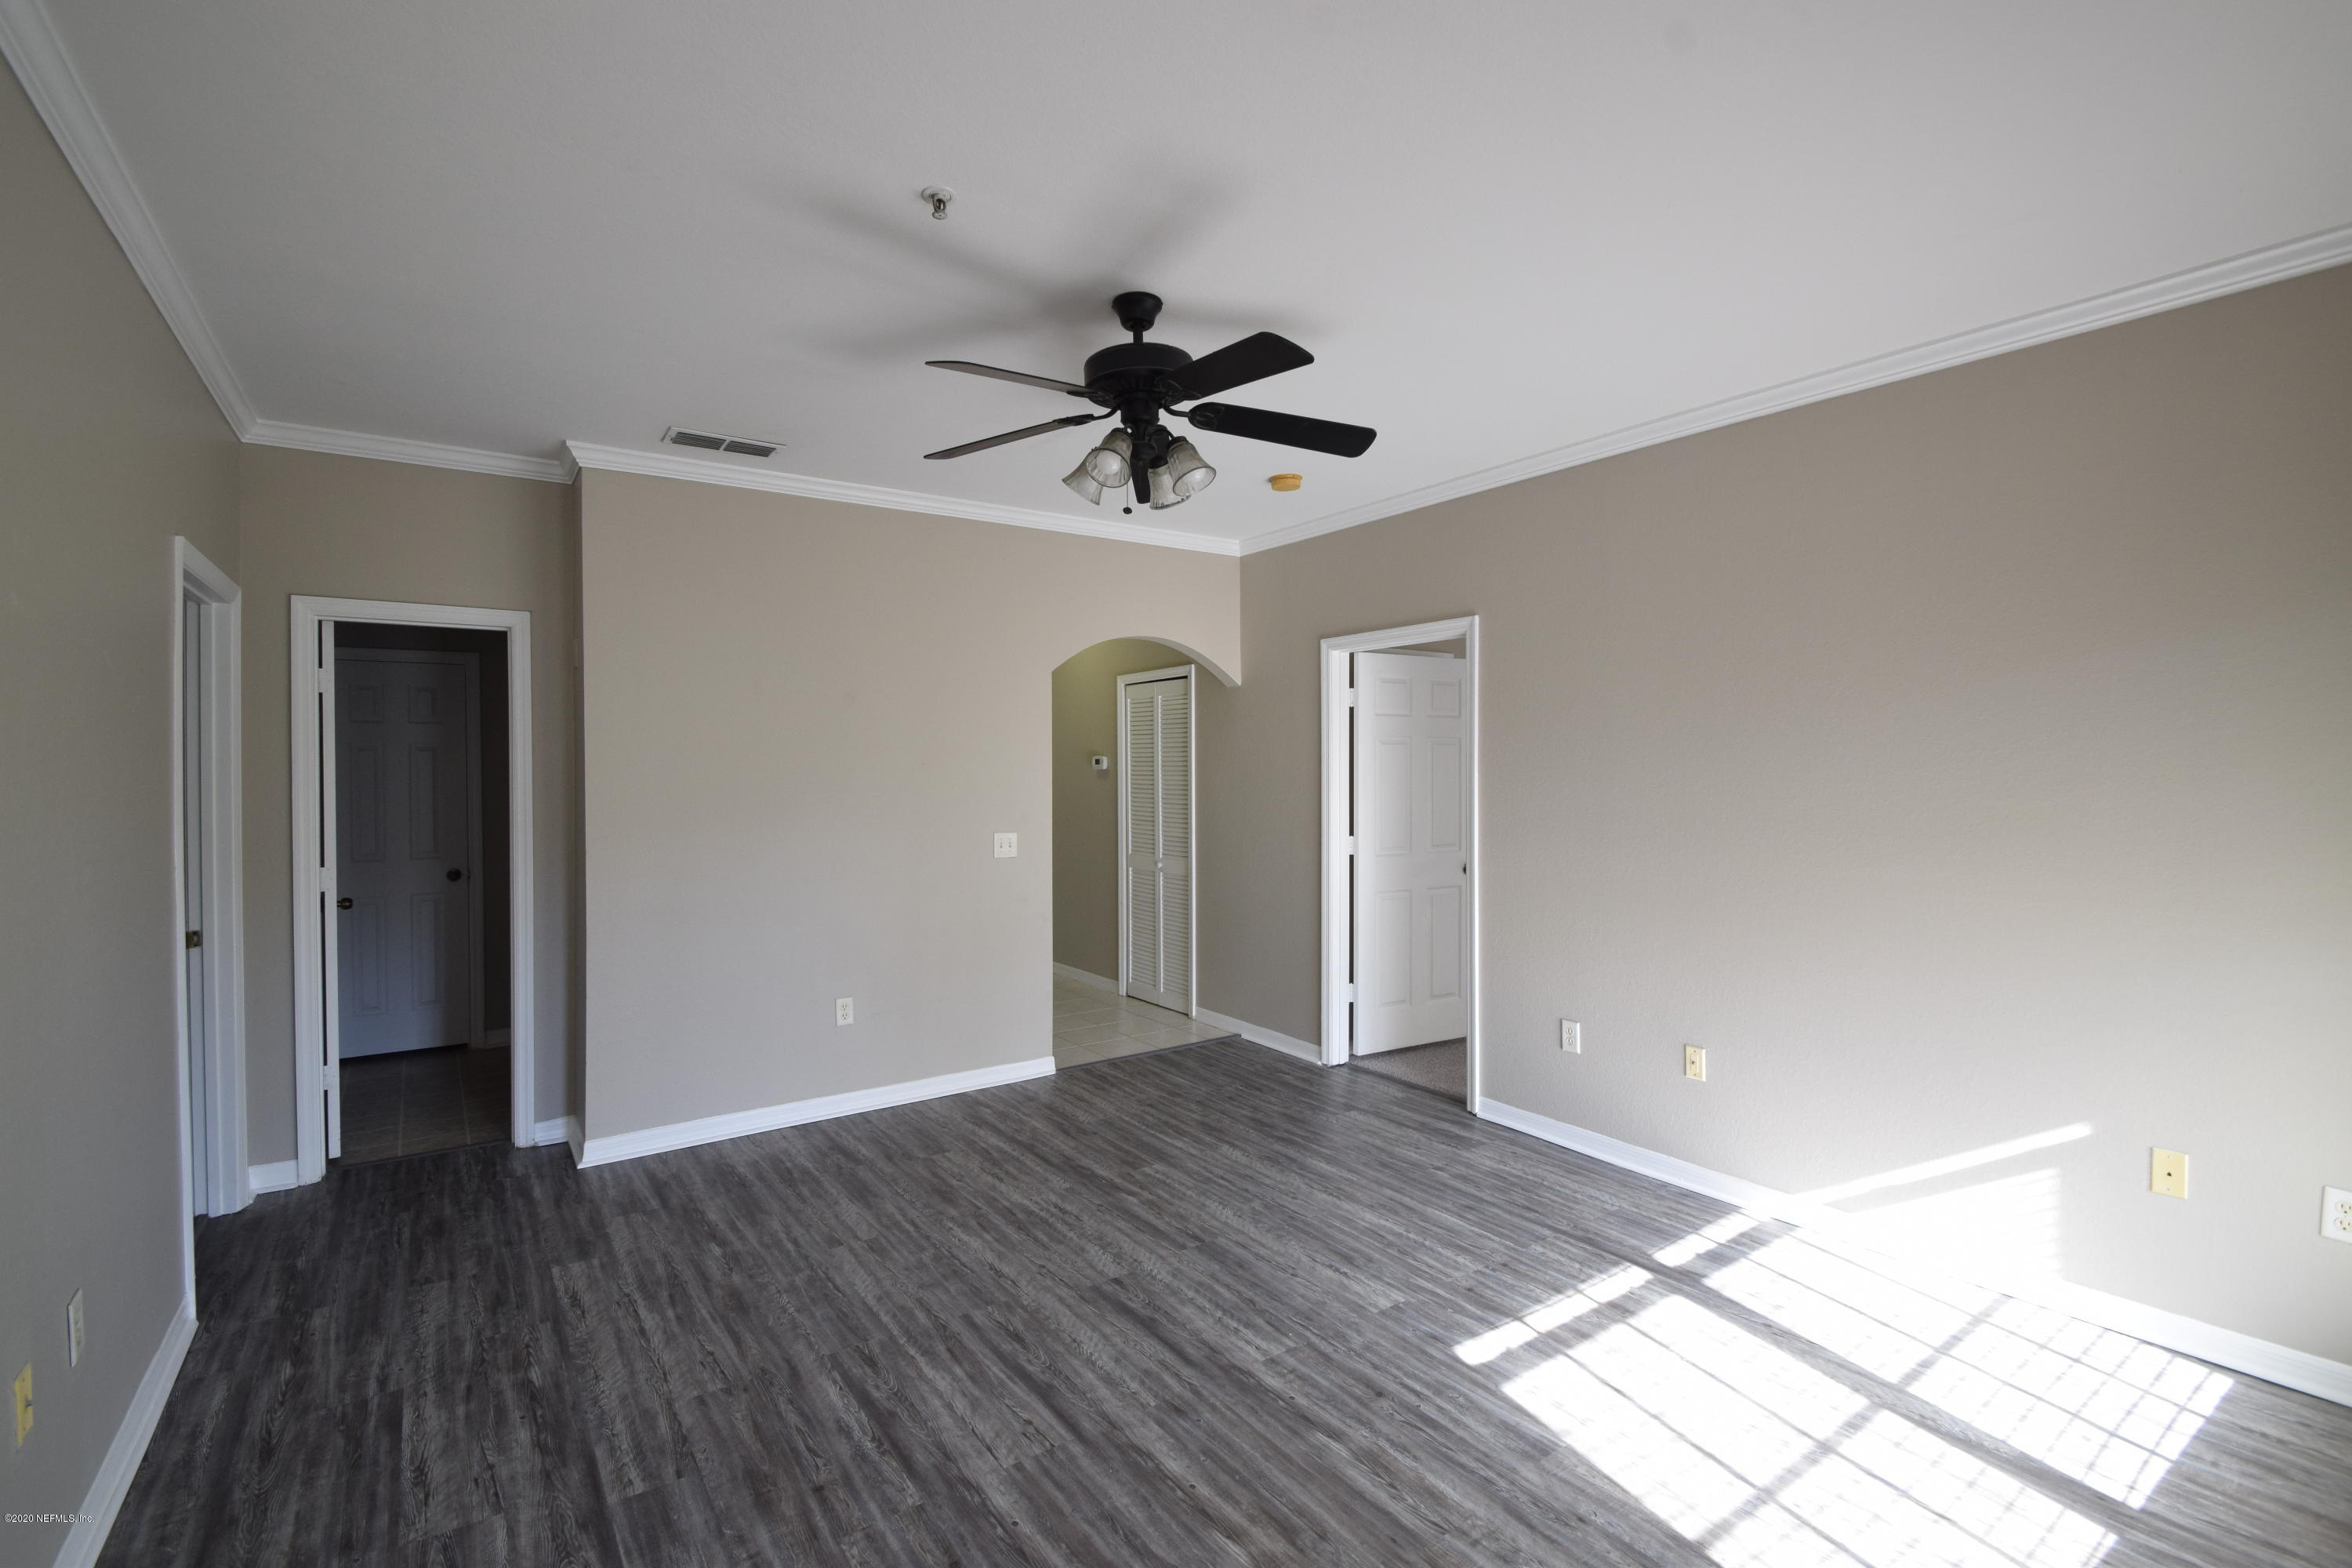 7800 POINT MEADOWS, JACKSONVILLE, FLORIDA 32256, 2 Bedrooms Bedrooms, ,2 BathroomsBathrooms,Residential,For sale,POINT MEADOWS,1083411